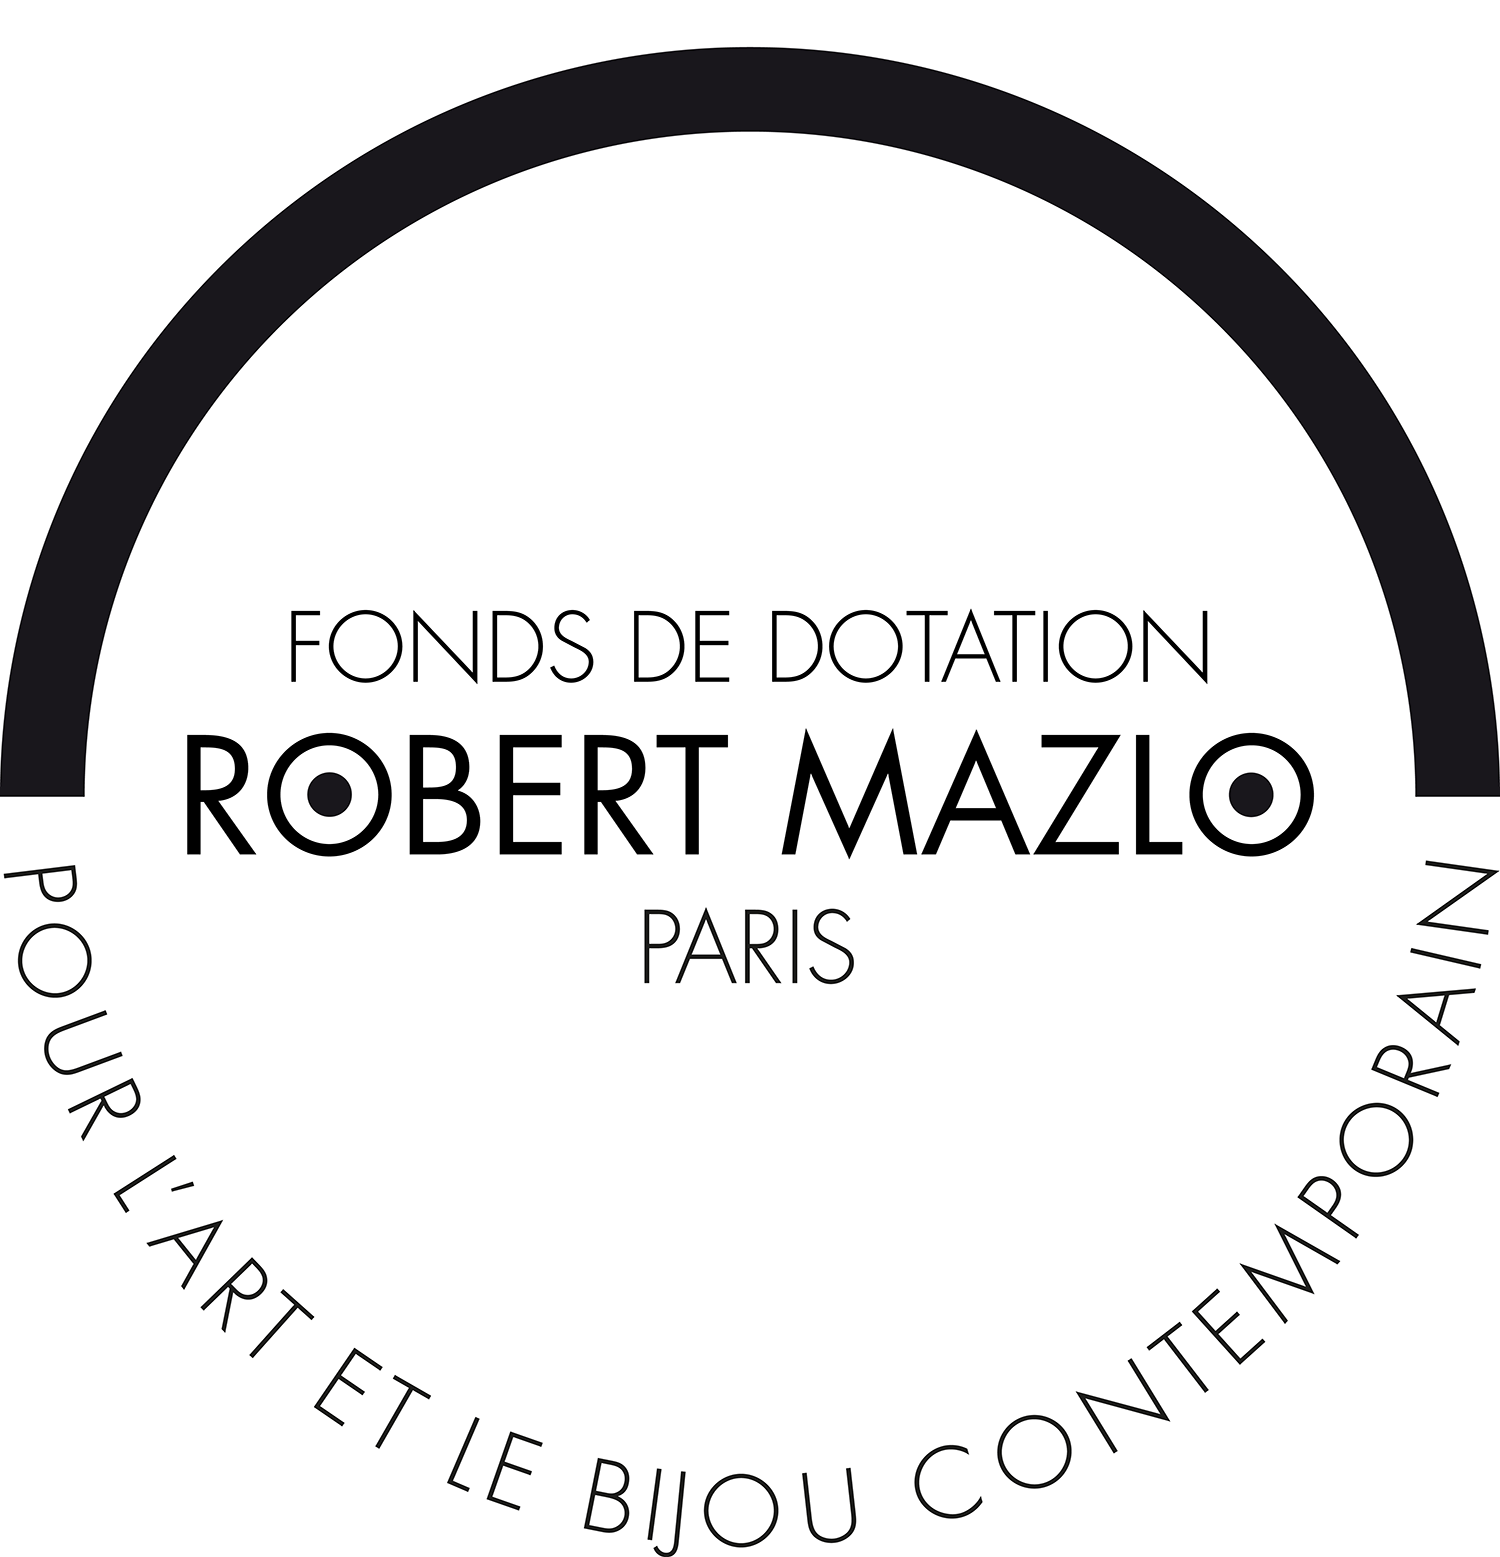 LOGO-FONDS-DOTATION-RVB-NB